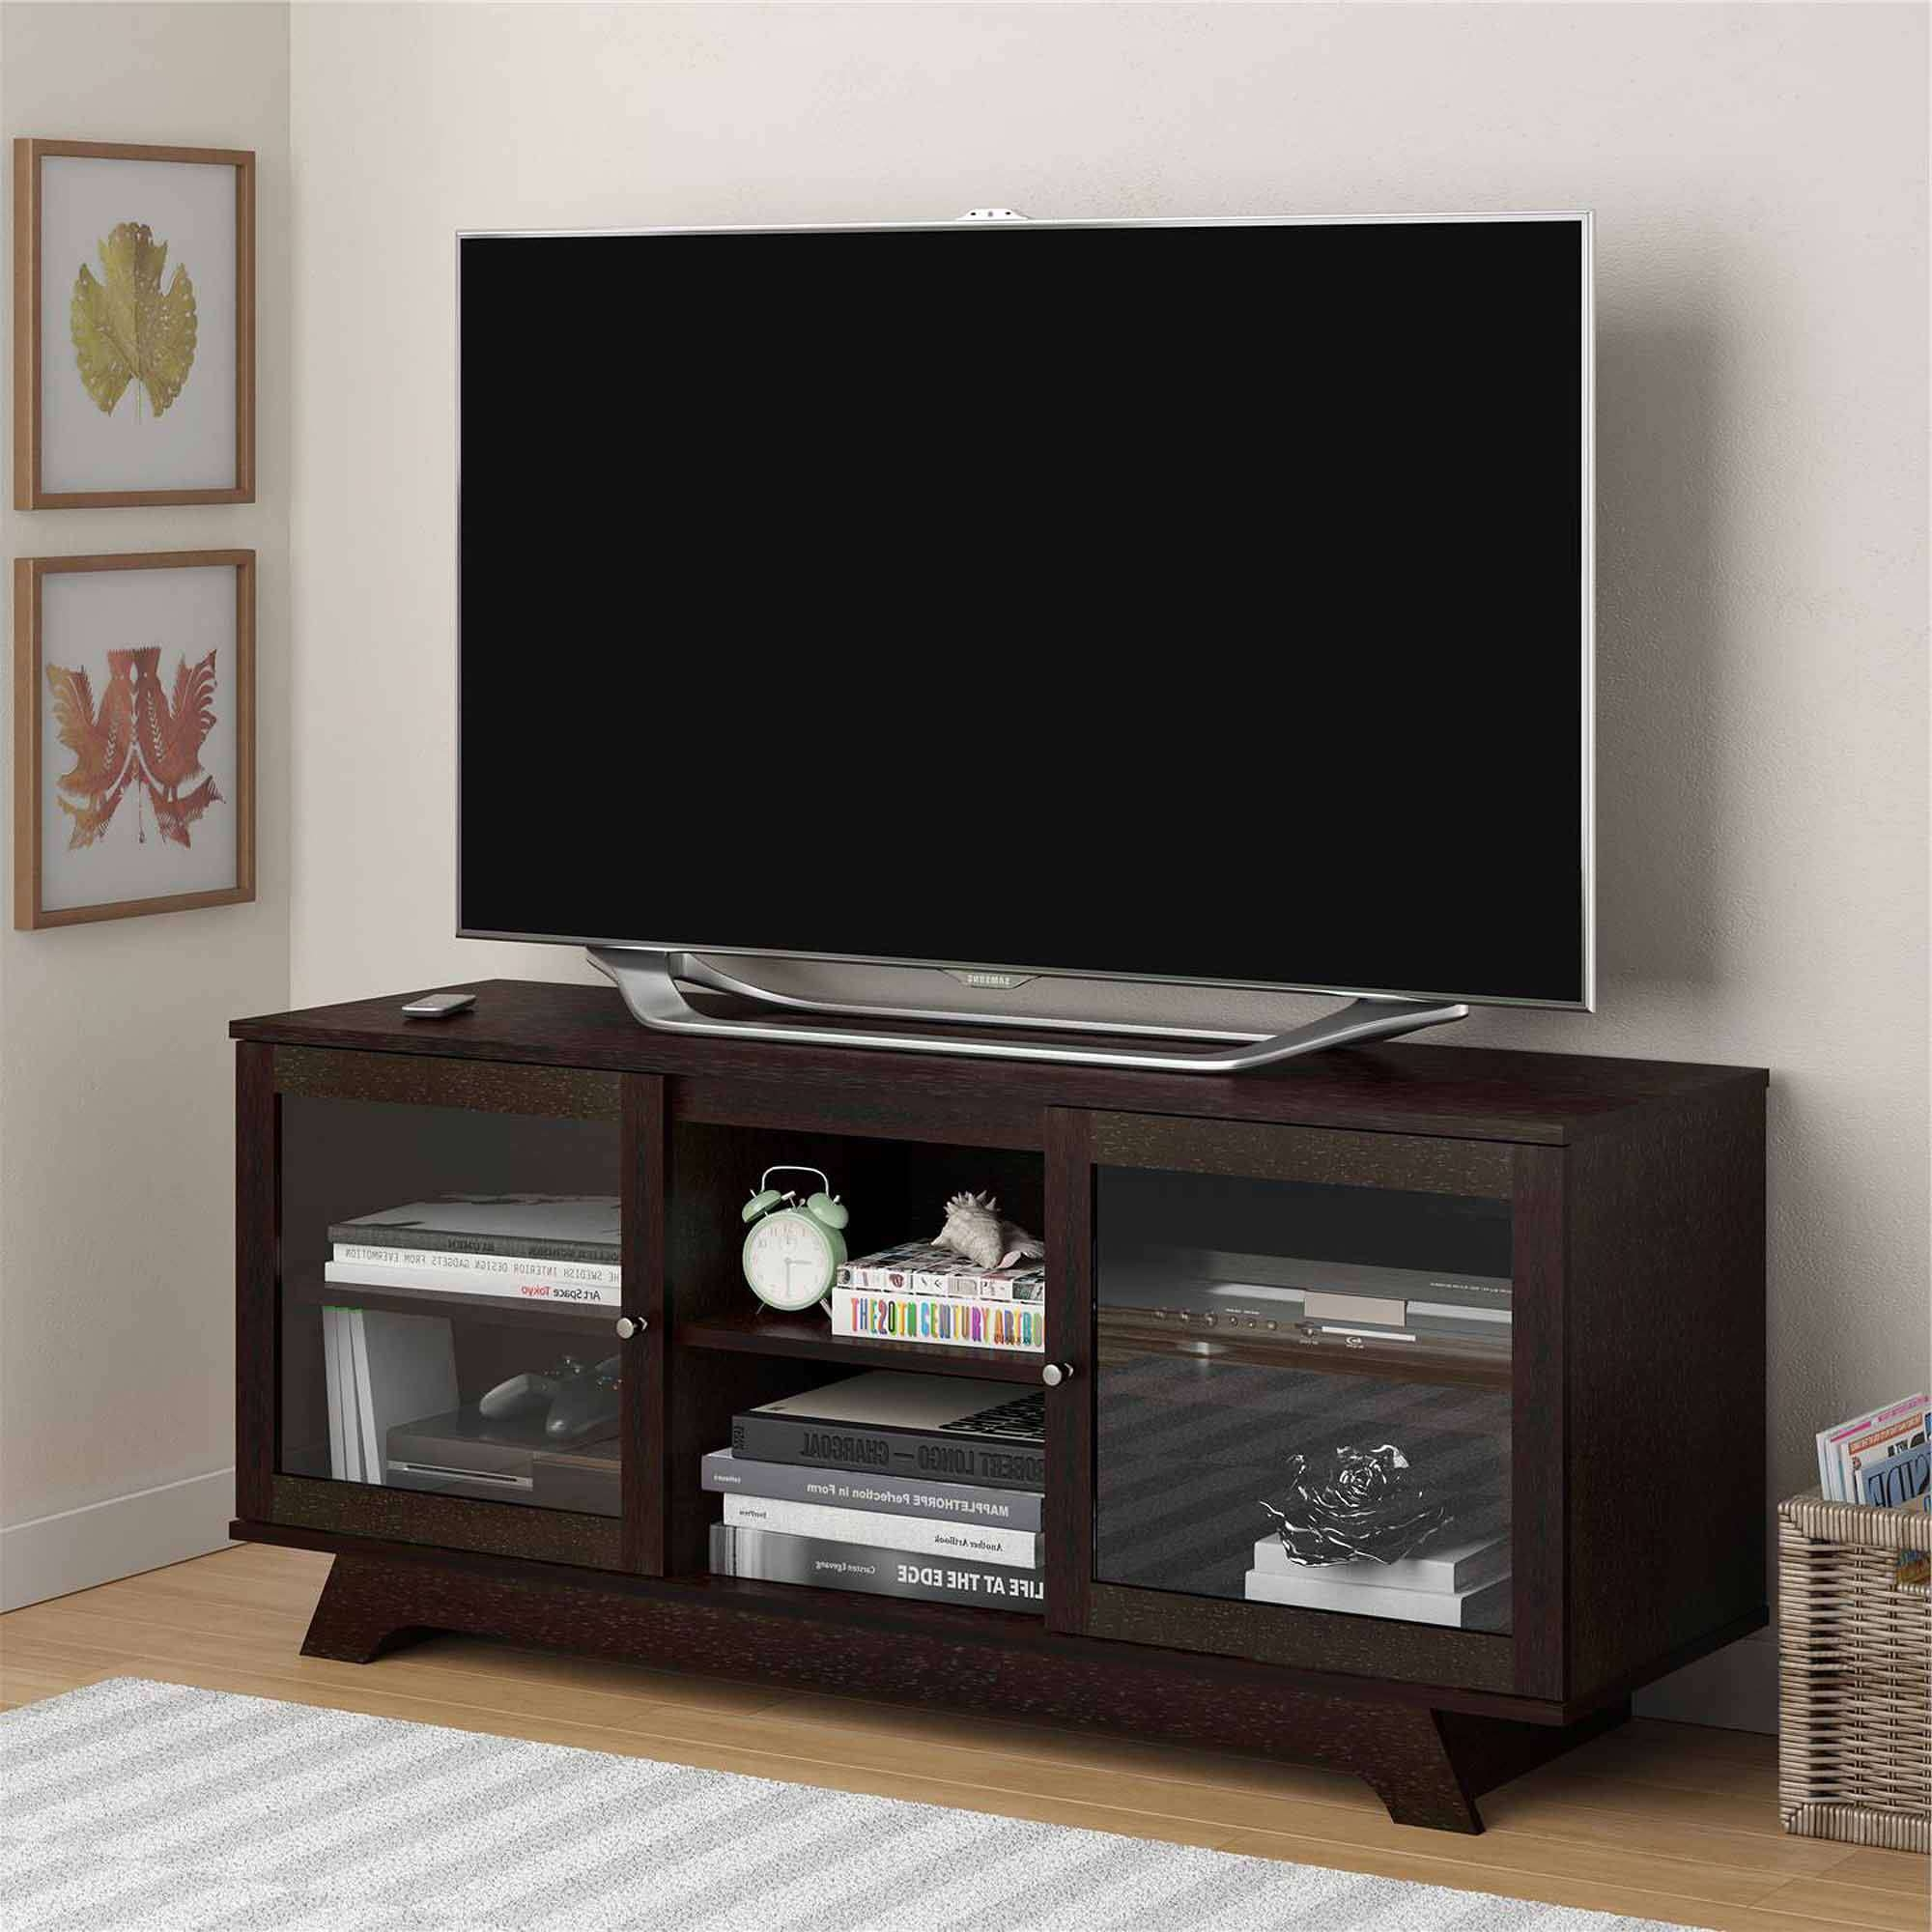 Tv Stands & Entertainment Centers – Walmart For Entertainment Center Tv Stands (View 5 of 15)